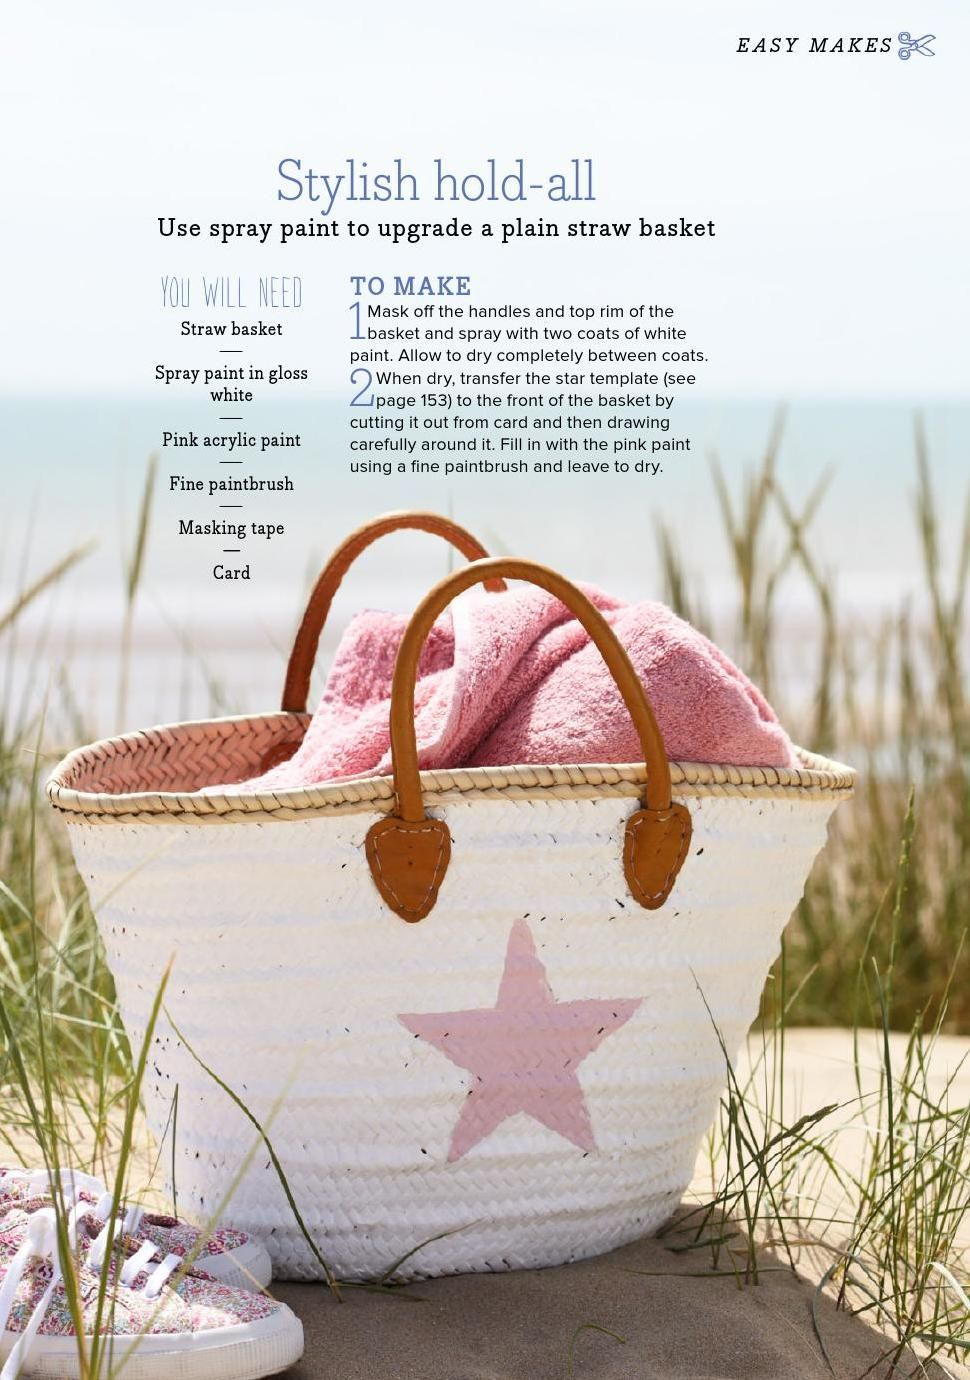 Prima makes issue 8 by craftme - issuu